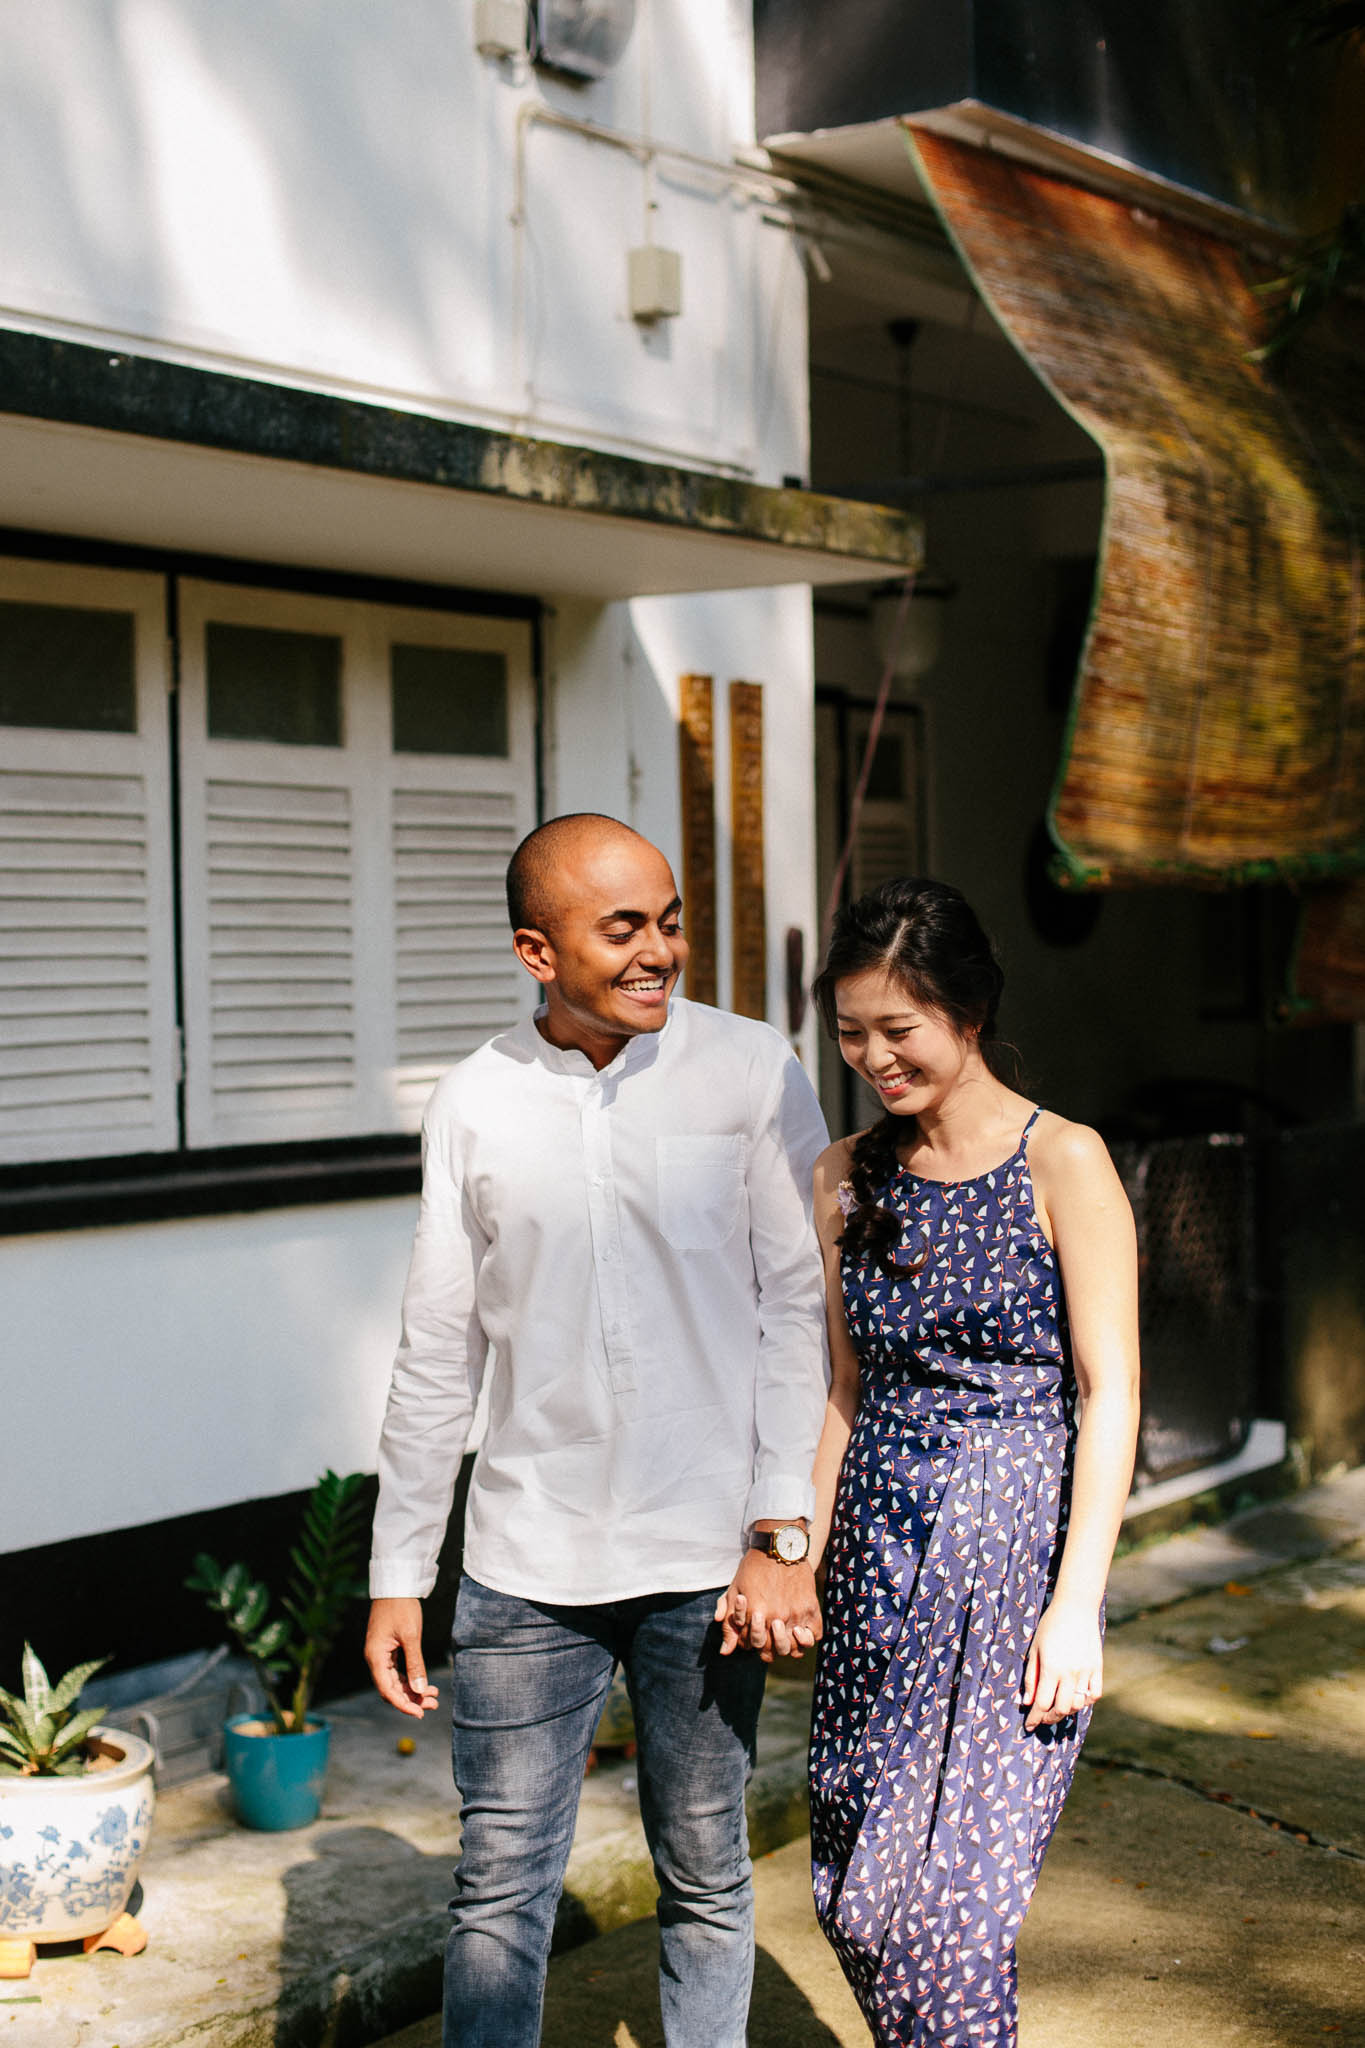 singapore-wedding-photographer-pre-wedding-jonathan-alicia-009.jpg